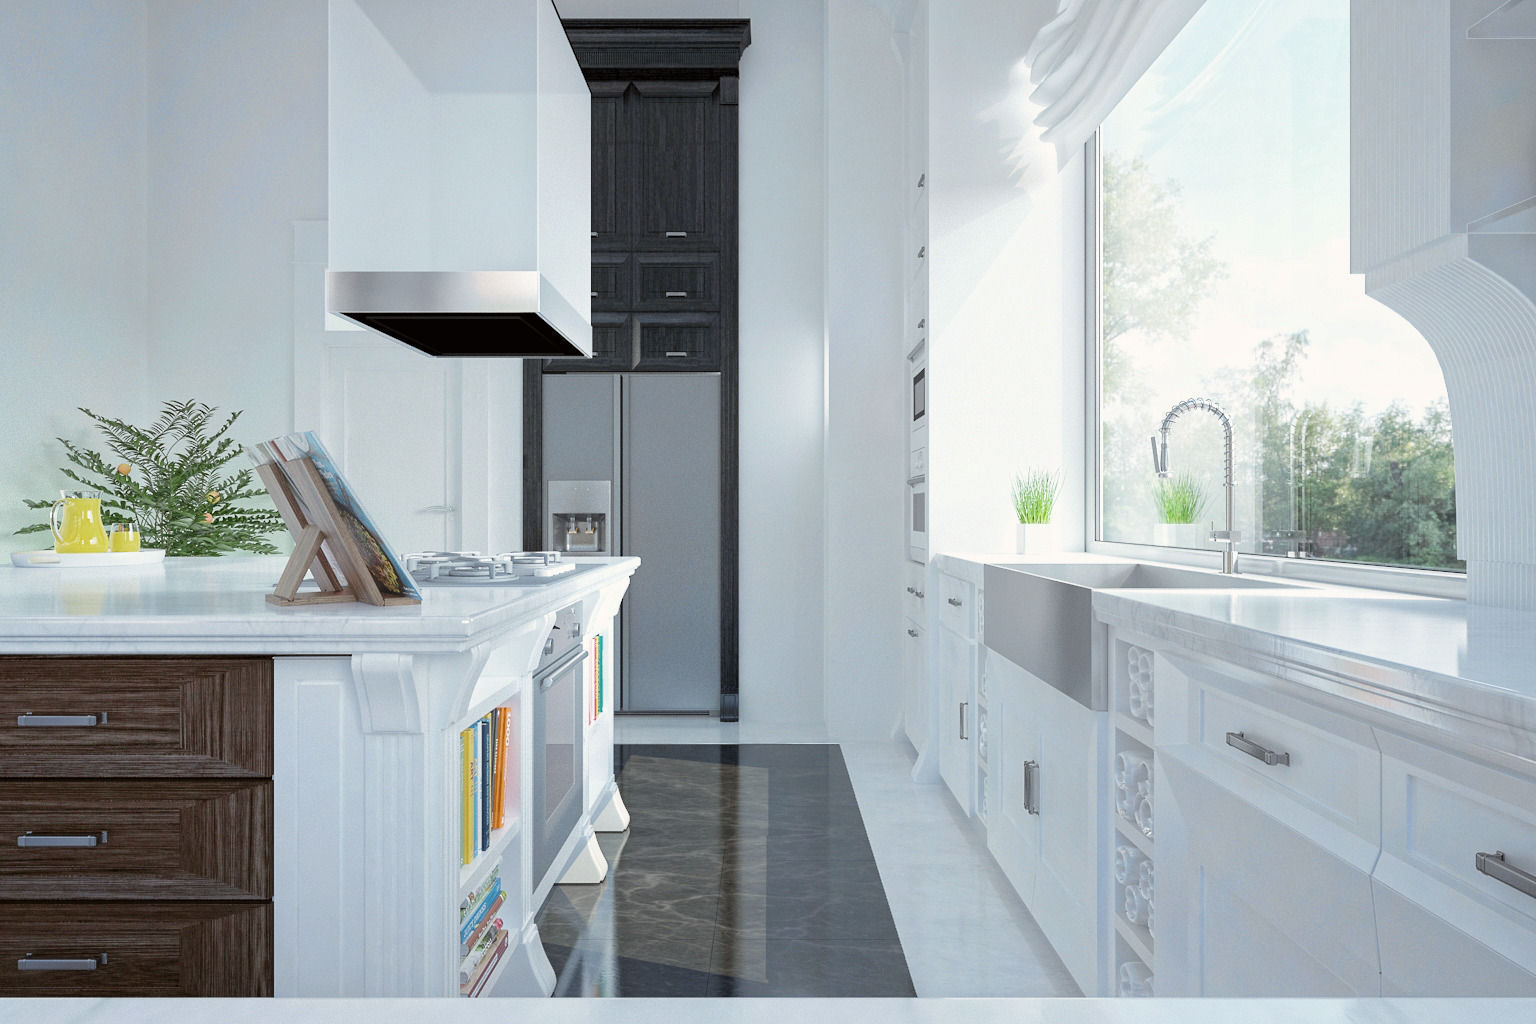 kitchen design 3d model.  royal kitchen design interior 3d model max 3 3D Royal CGTrader